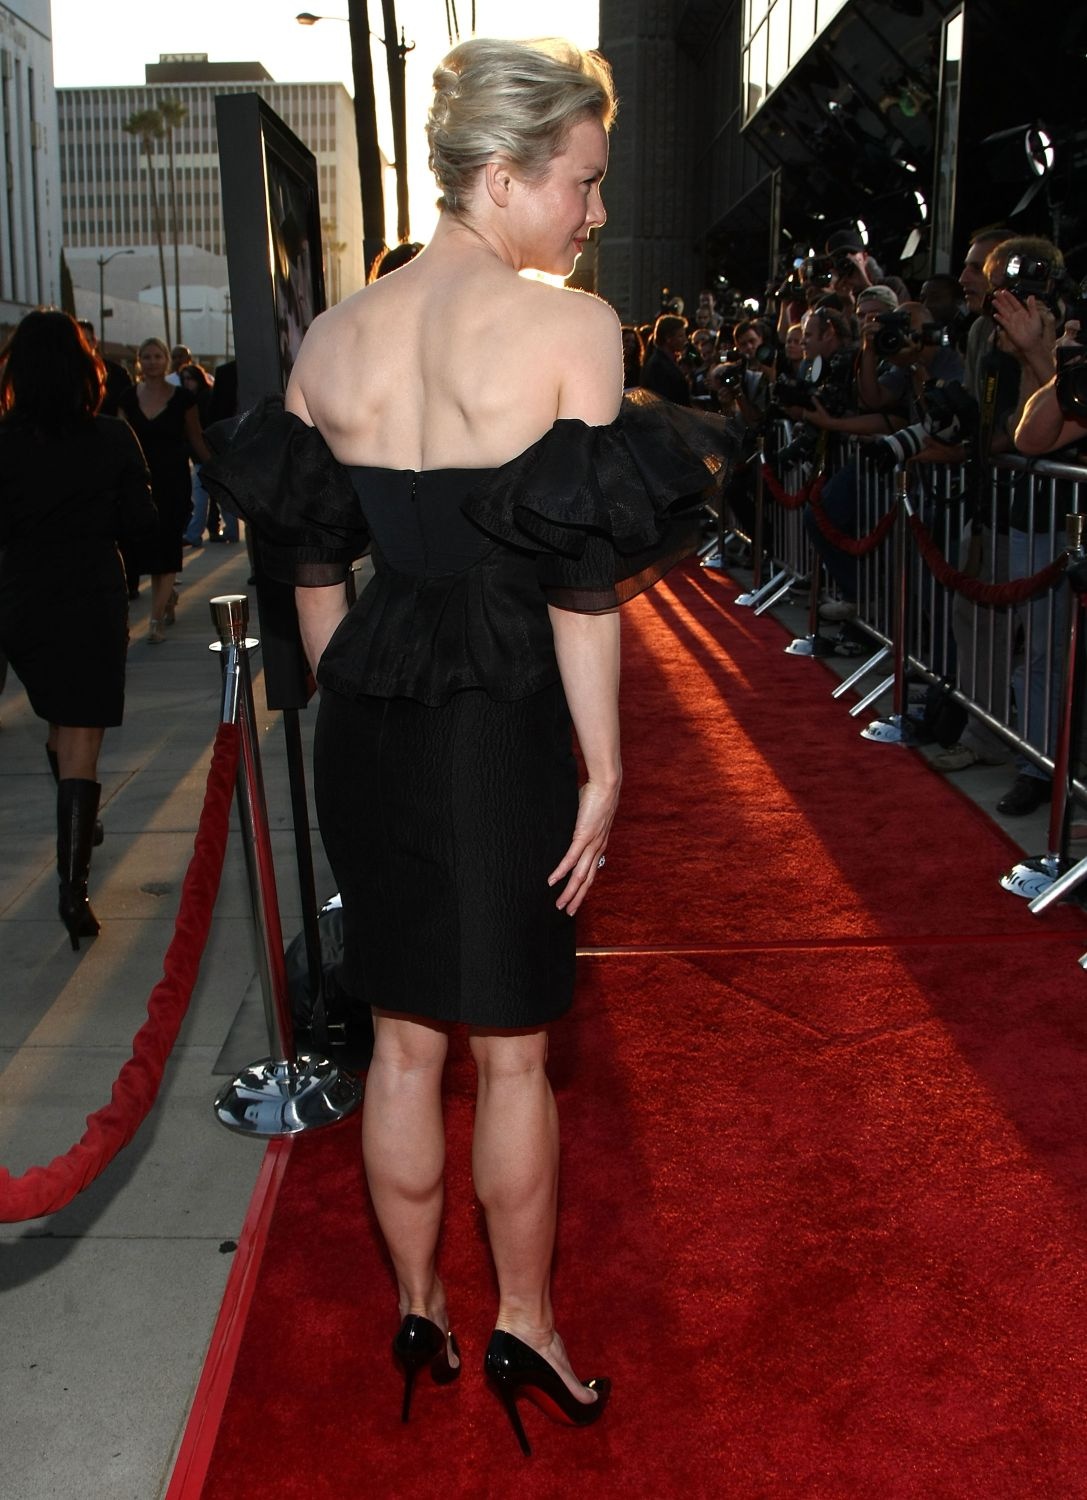 renee zellweger best celebrity legs in high heels Â« only in high ...